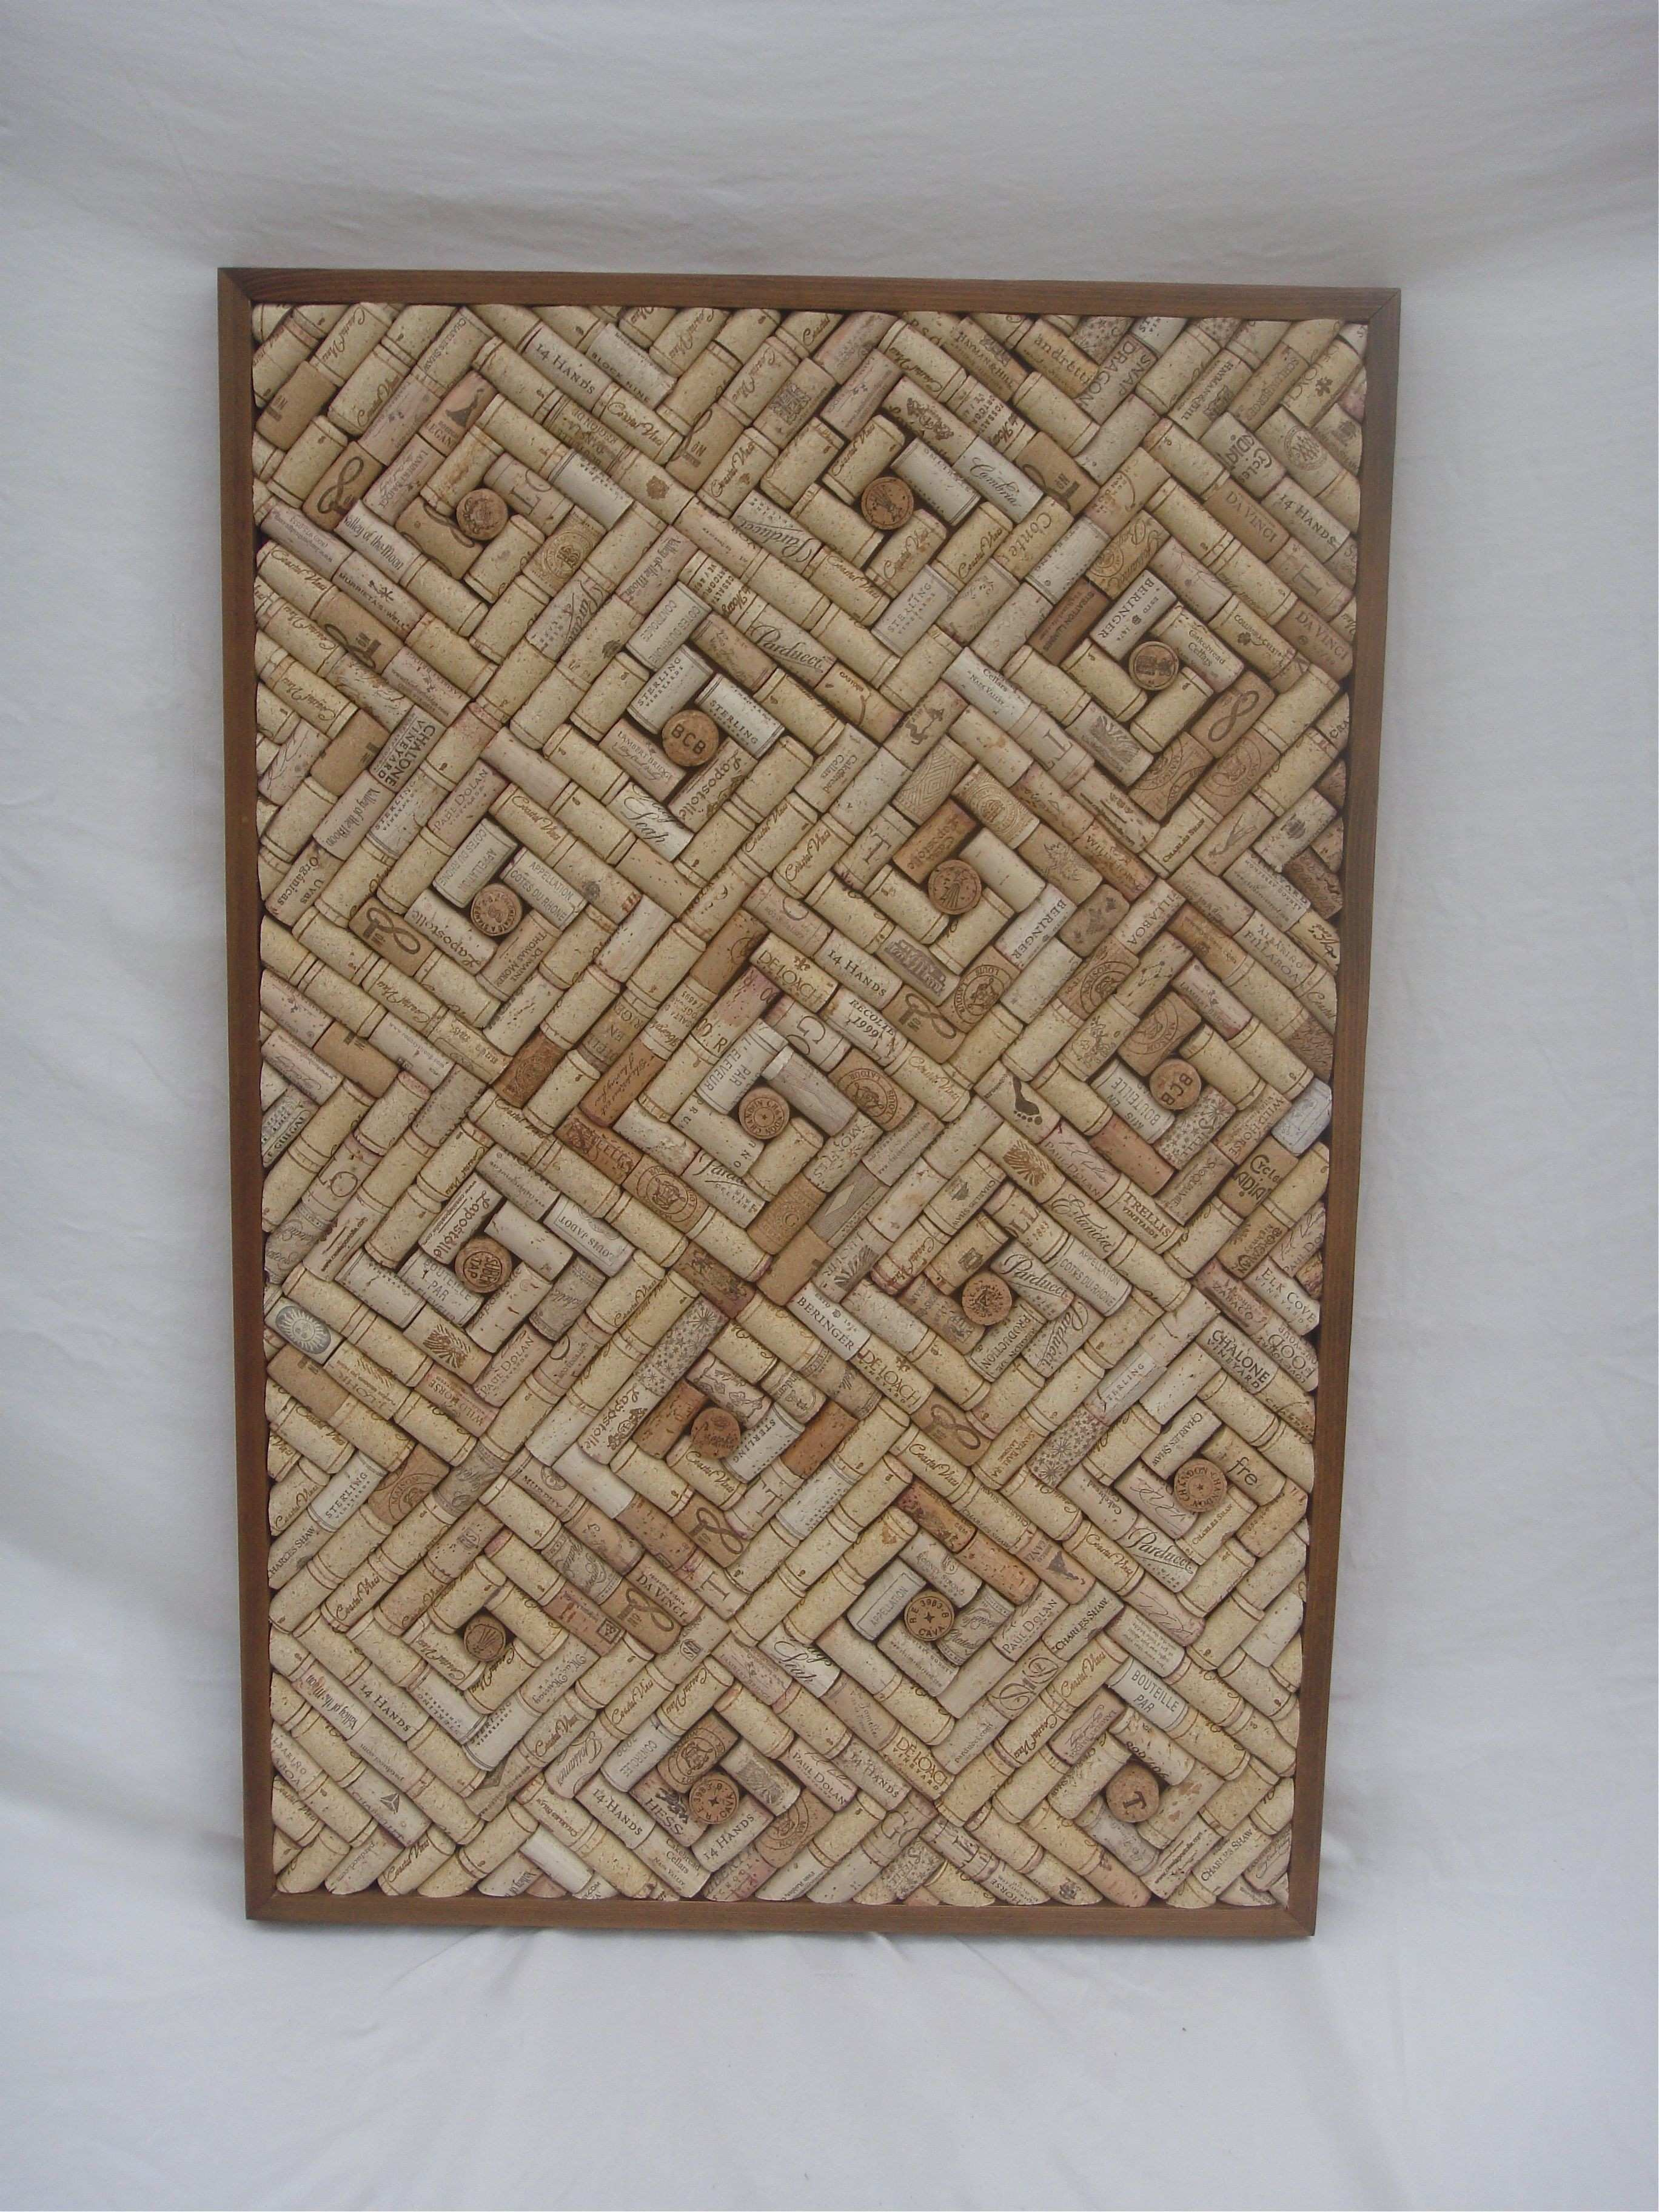 I make cork boards out of old wine corks Many sizes shapes and